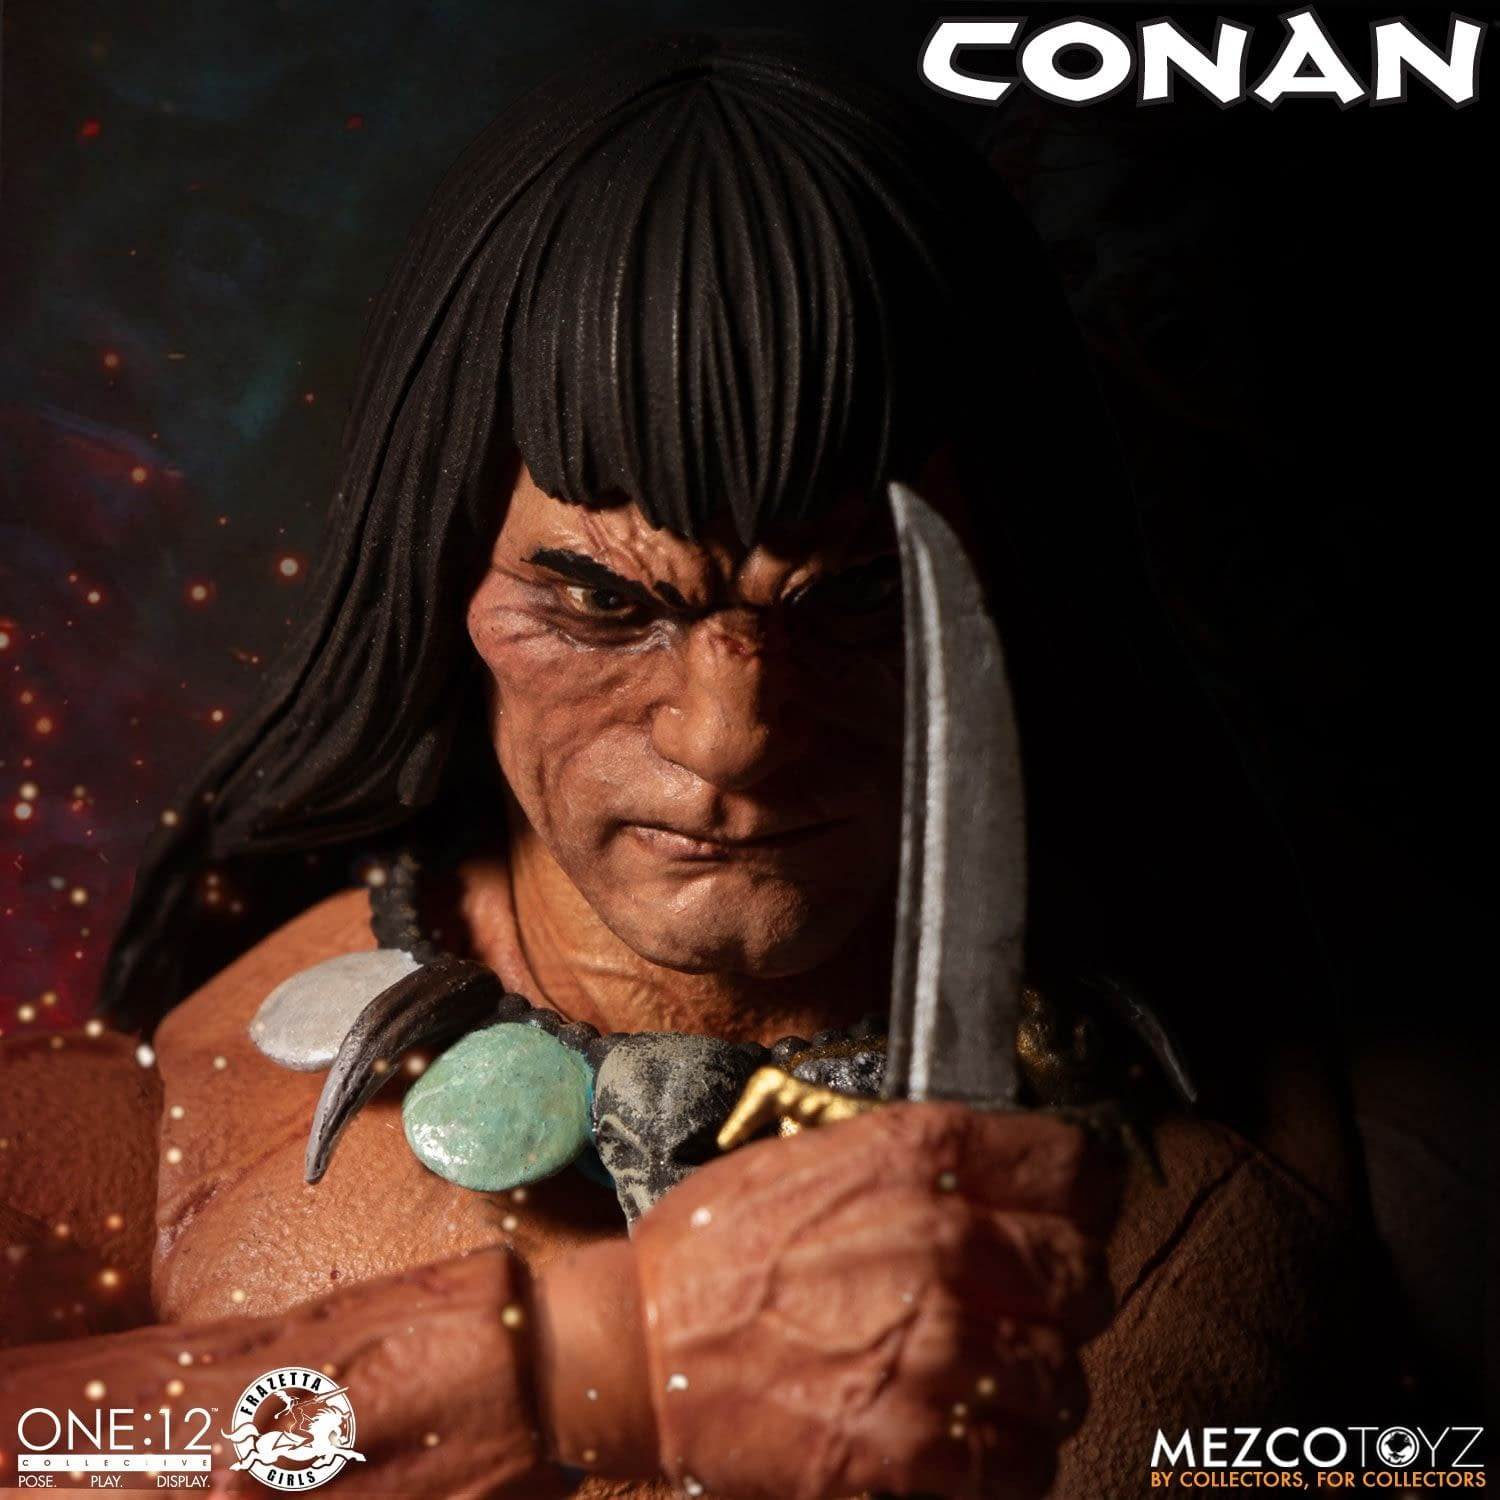 Conan the Barbarian Arrives with New Figure from Mezco Toyz